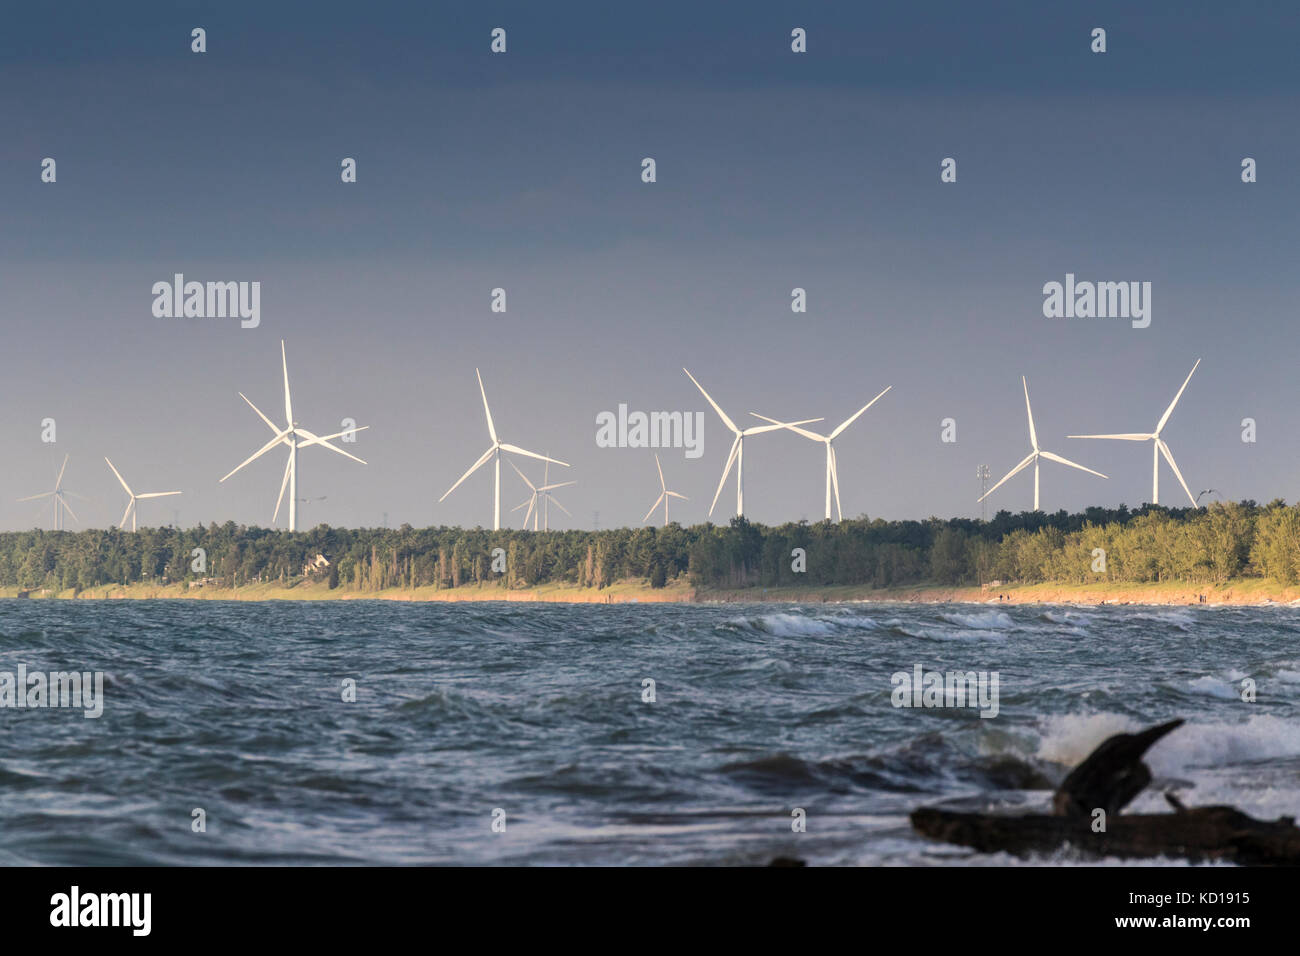 Windmills over Lake Huron at Grand Bend (Lambton Shores) as seen from the Pinery Provincial Park, Ontario, Canada - Stock Image